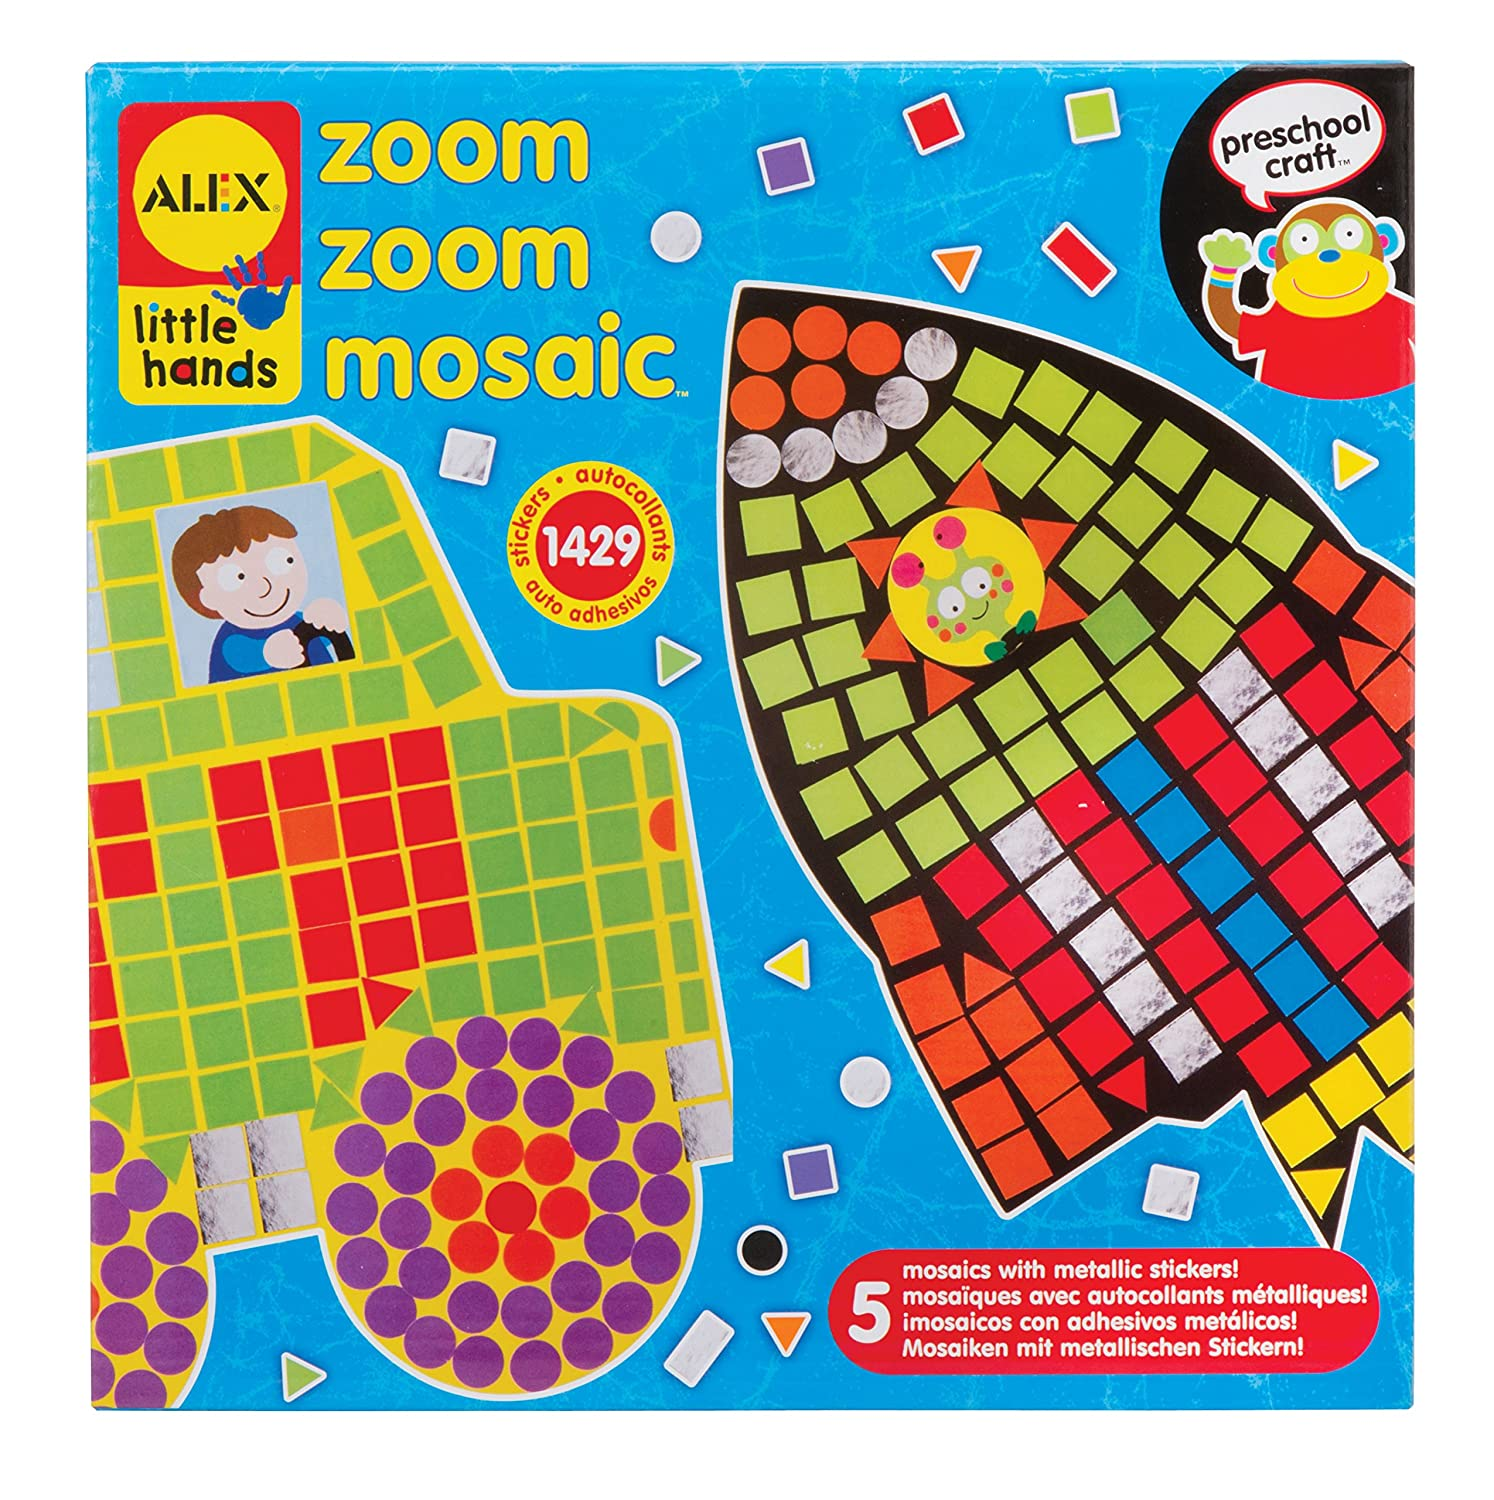 Alex Toys Early Learning Zoom Zoom Mosaic Little Hands 1405